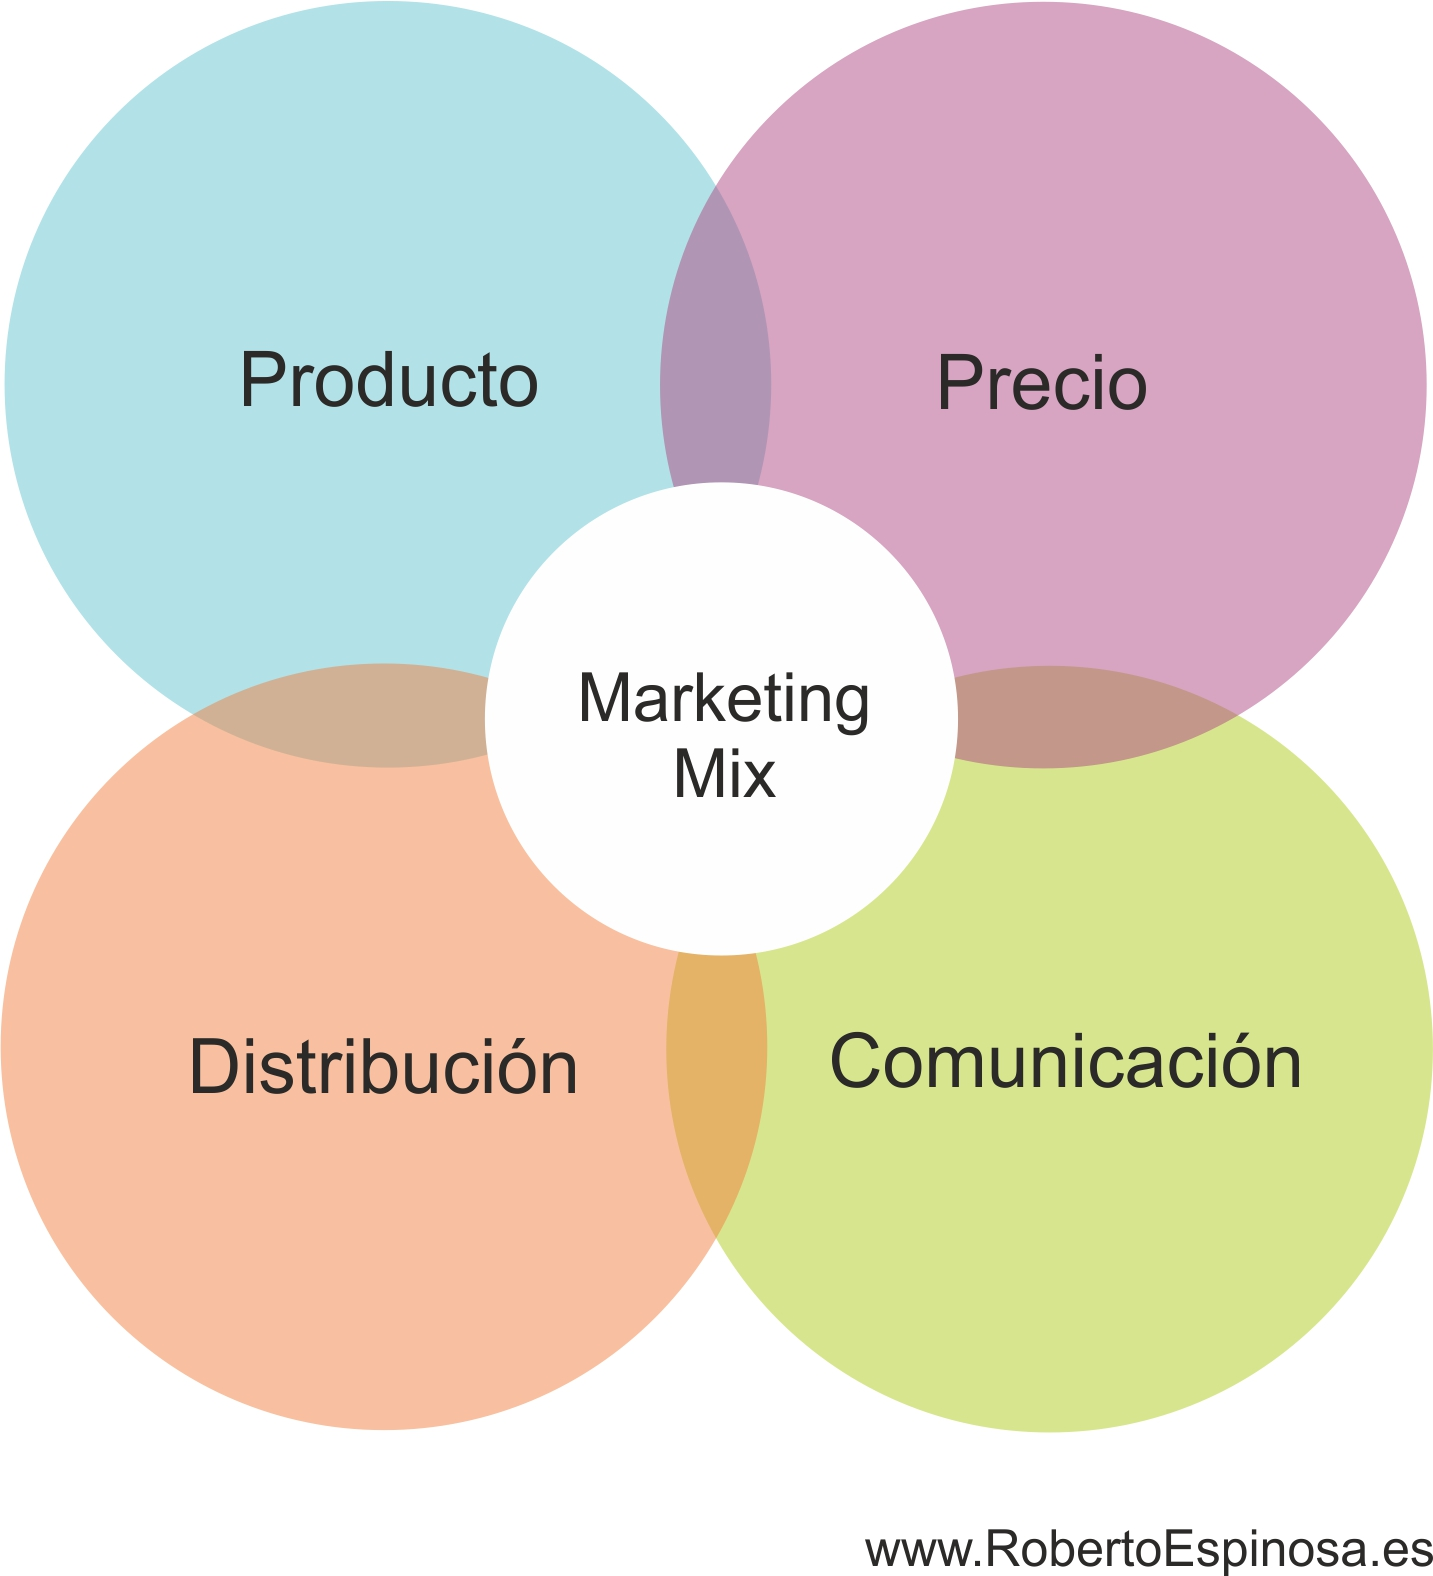 4ps of marketing mix The 4ps of marketing, product, price, promotion and place, have been used by   save framework instead of the 4p's marketing mix, as they craft and define.